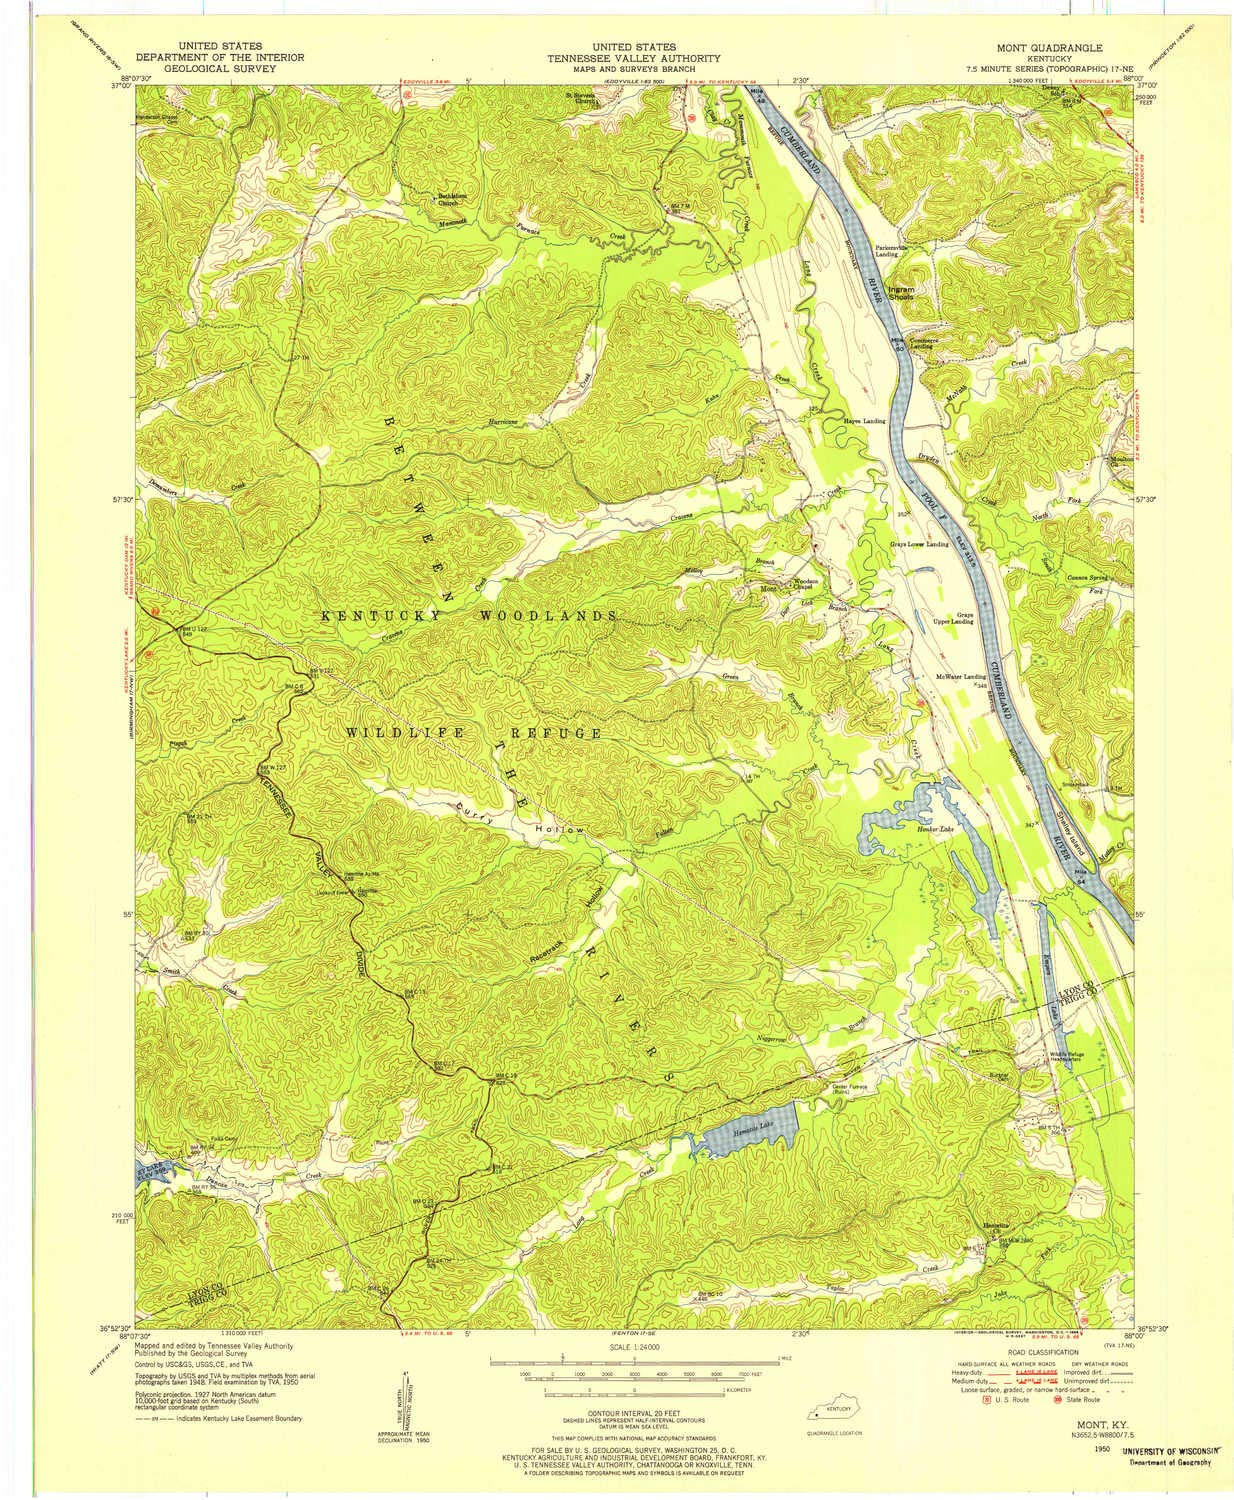 Amazon.com : YellowMaps Mont KY topo map, 1:24000 Scale, 7.5 X 7.5 on owenton ky city maps, kentucky state maps, housing in henderson ky maps, gamaliel ky crab orchard maps, old ohio county ky maps, kentucky satellite maps, kentucky floodplain maps, kentucky street maps, ohio farm maps, kentucky geological maps, ifor morganfield ky mine maps, tennessee geologic quadrangle maps, red bird ky trail maps, detailed kentucky road maps, civil war railroad maps, larue county kentucky old maps, indiana topographic maps, landforms topographic maps, kentucky quadrangle maps,